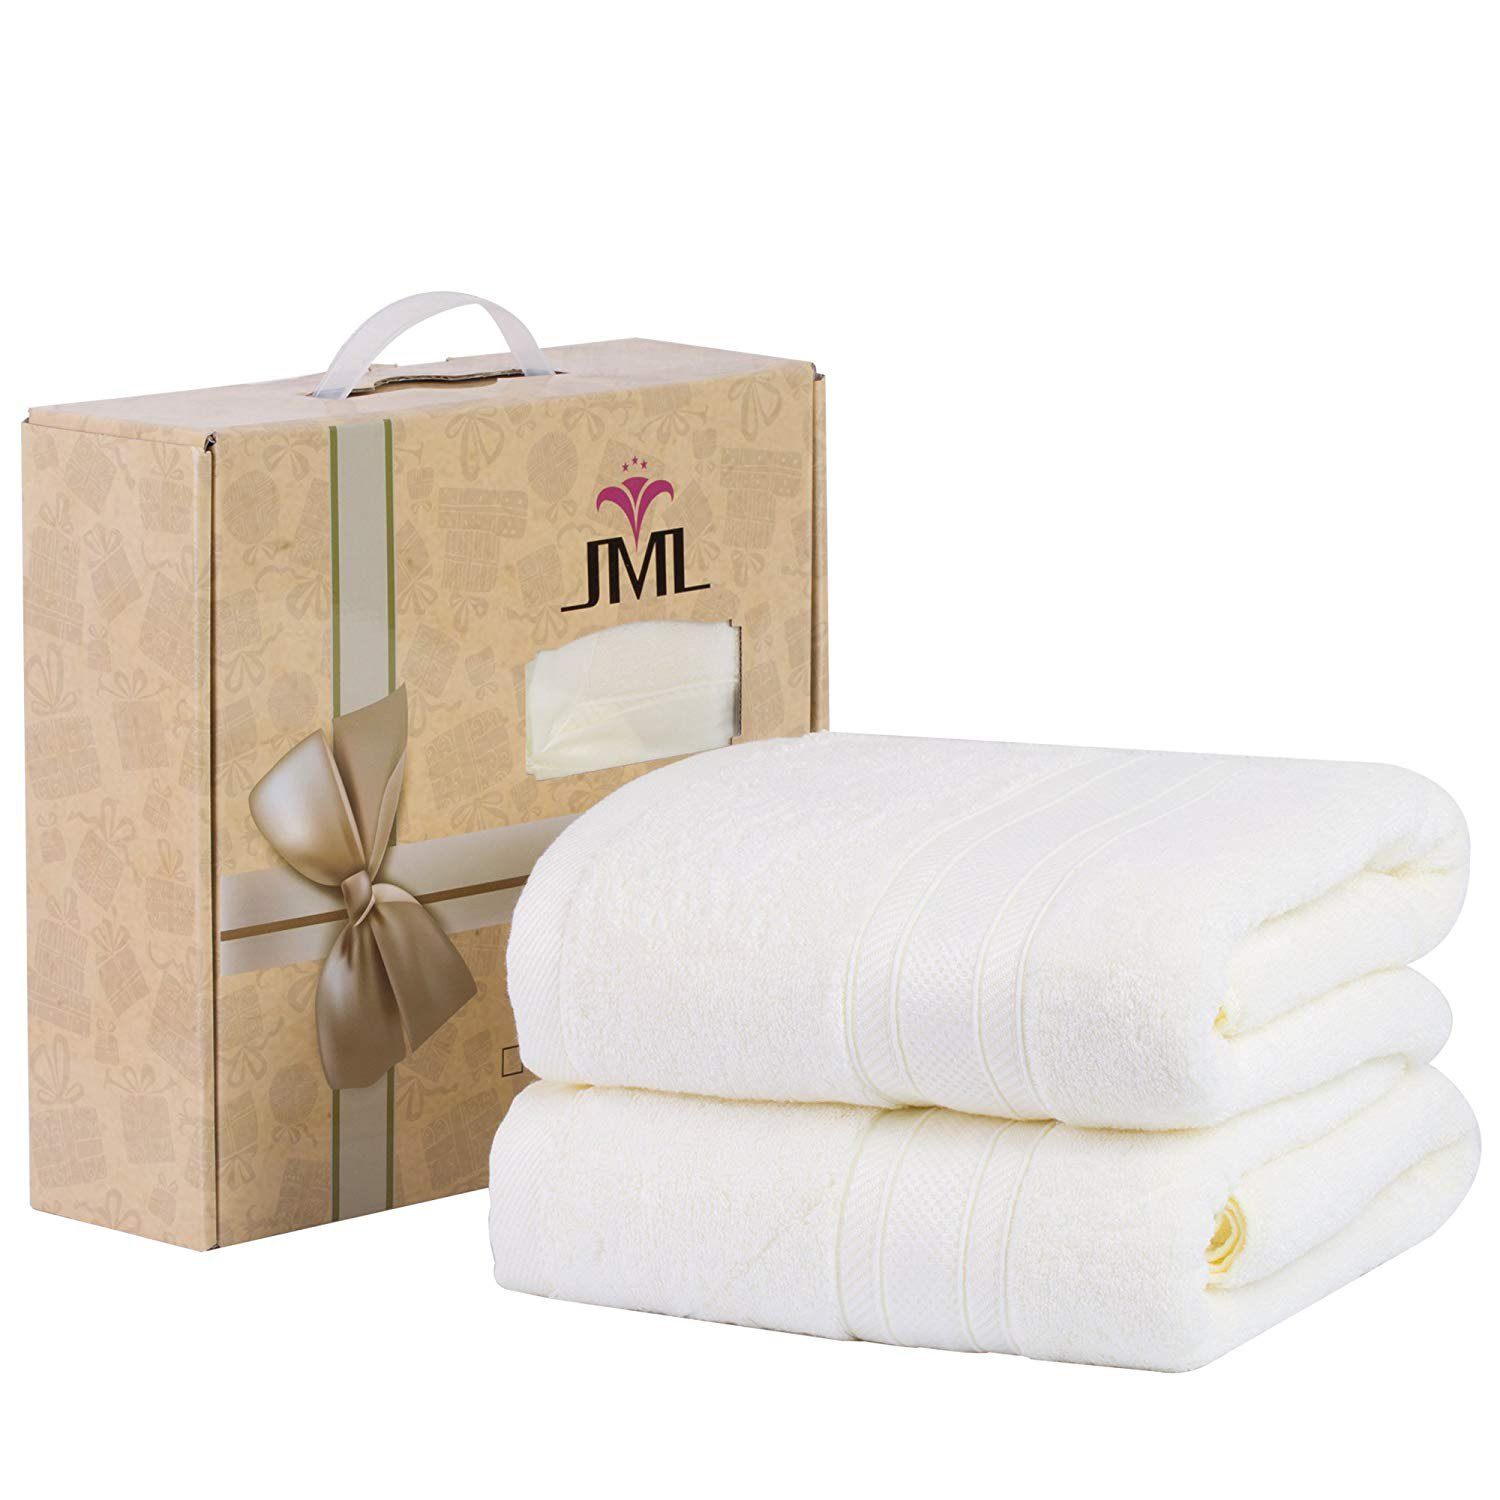 Jml Bath Towels, Bamboo Bath Towels(2 Pack, 27'' x 55''), 500GSM - Oversized, Hypoallergenic, Soft and Absorbent, Quick Drying Hotel Spa Bath Towel